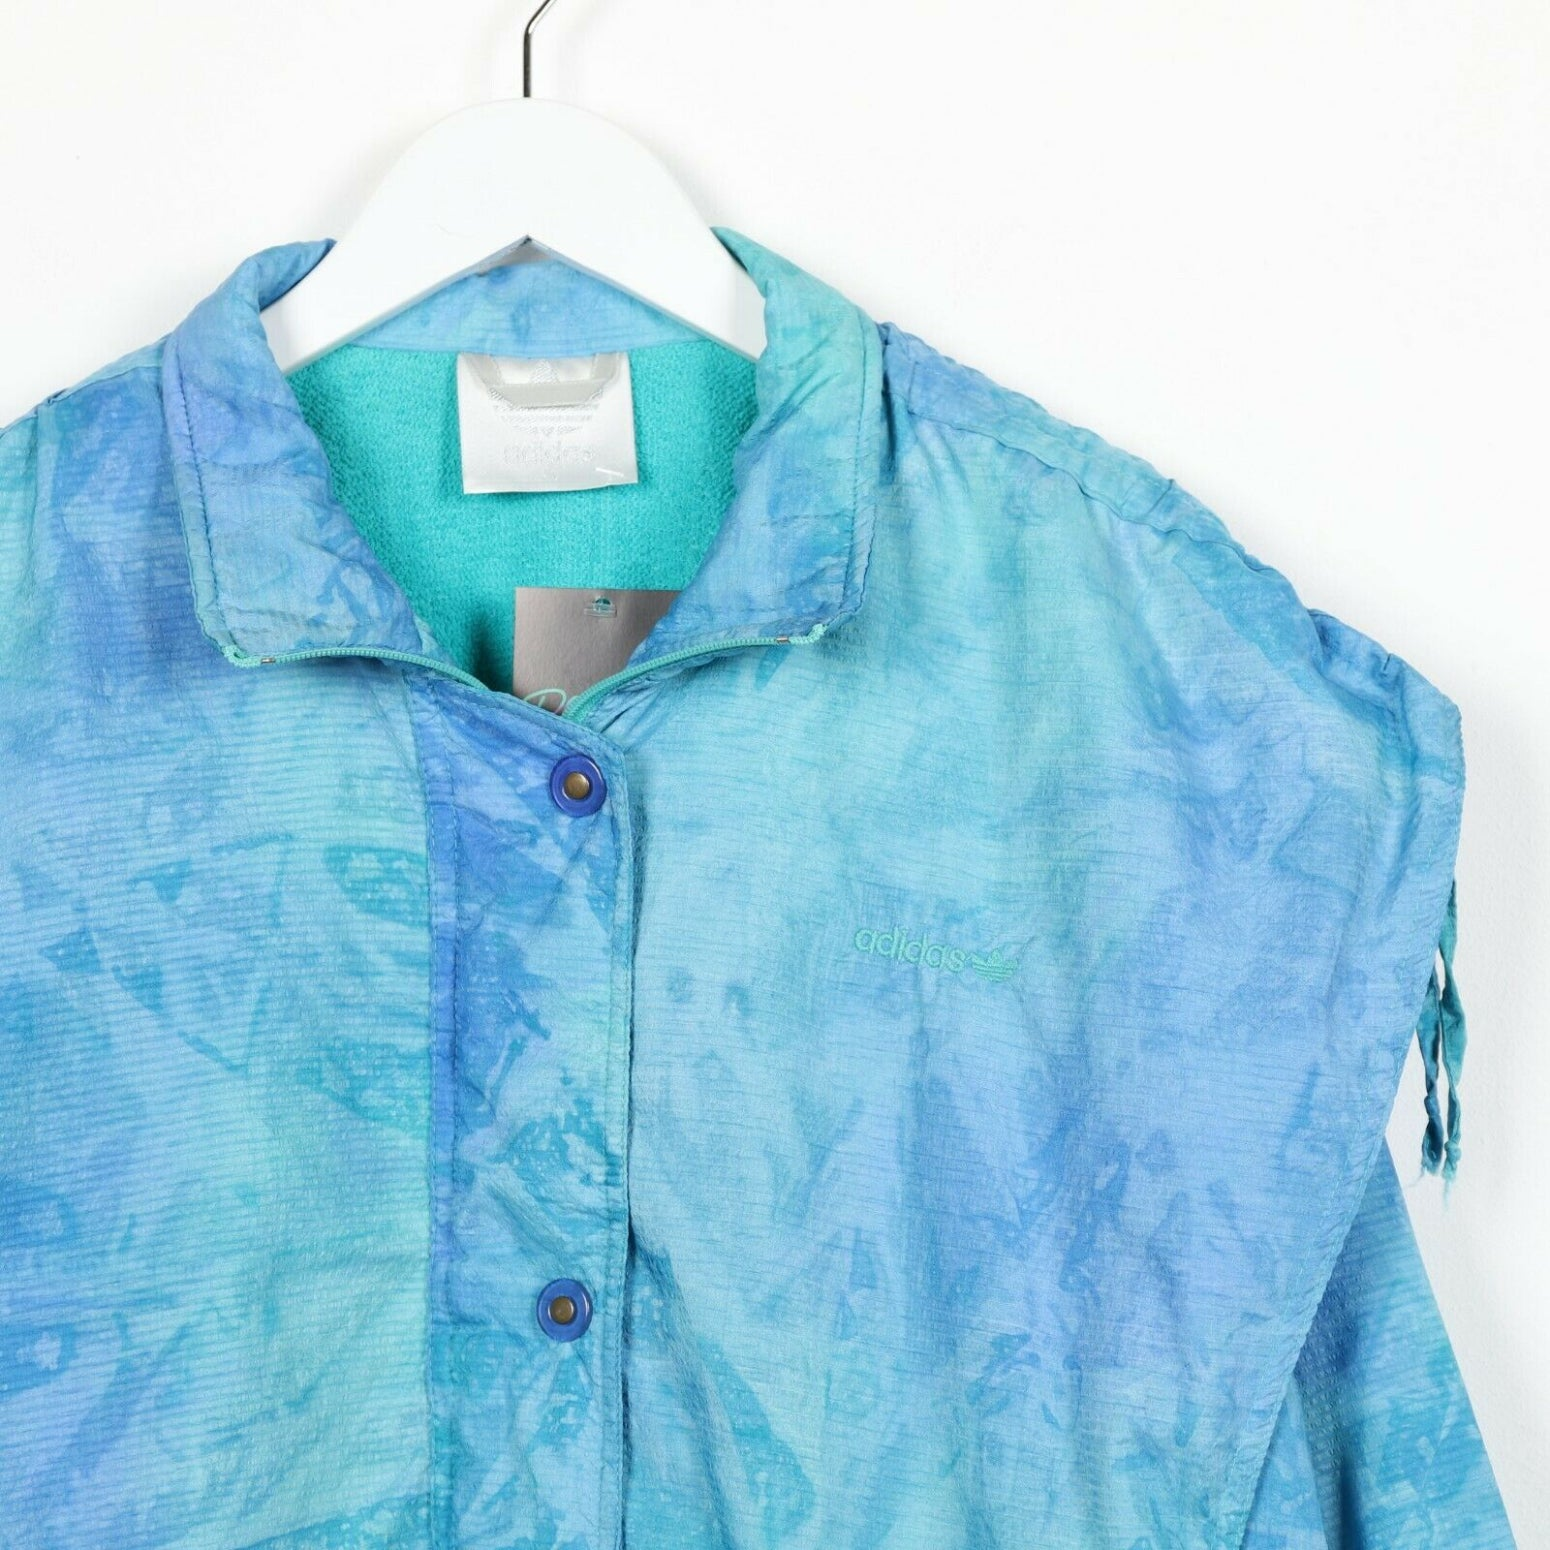 Vintage 80s ADIDAS Abstract Soft Shell Windbreaker Jacket Blue Medium M